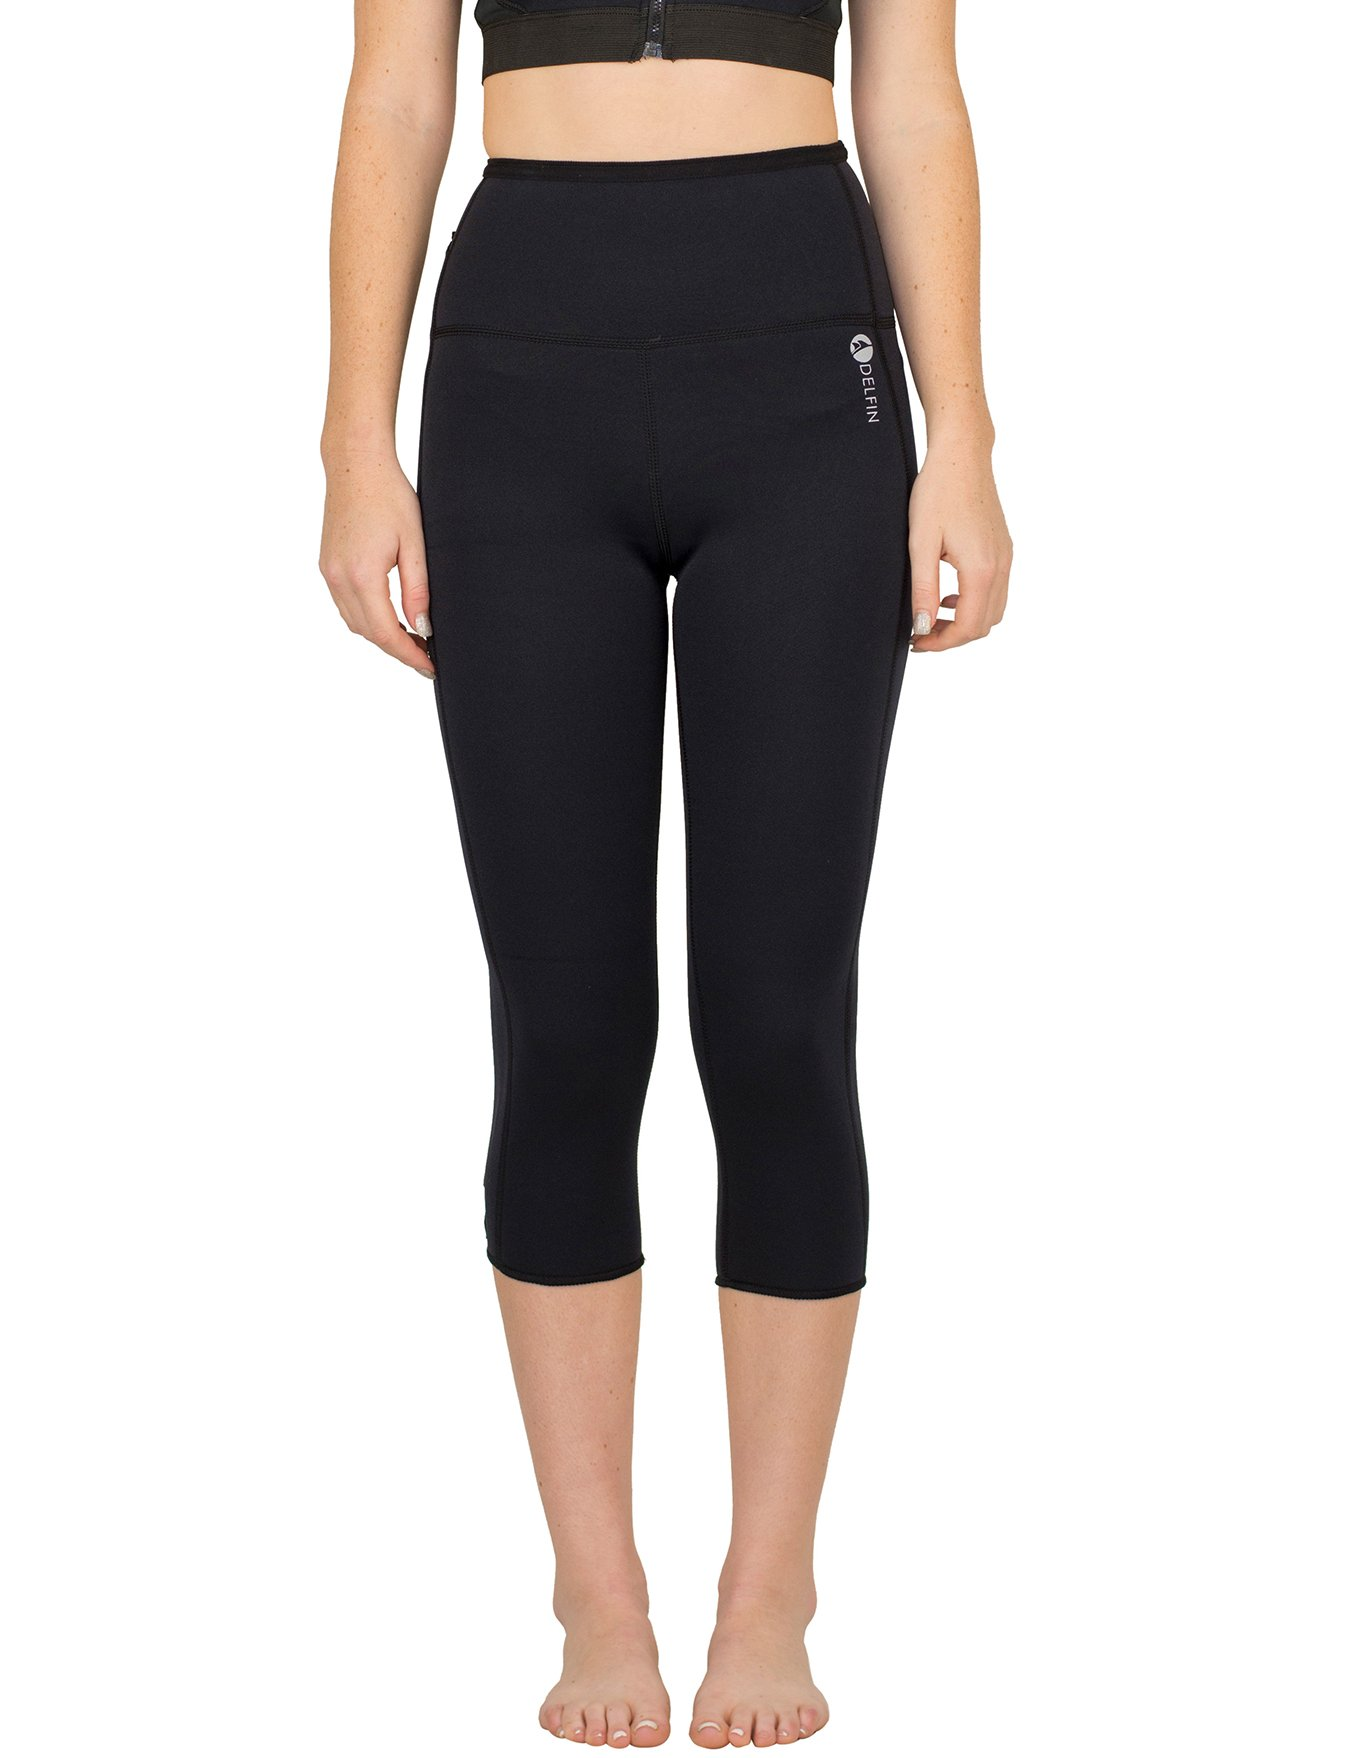 Delfin Womens Heat Maximizing Neoprene Anti Cellulite Fitness Capri, Black, XL